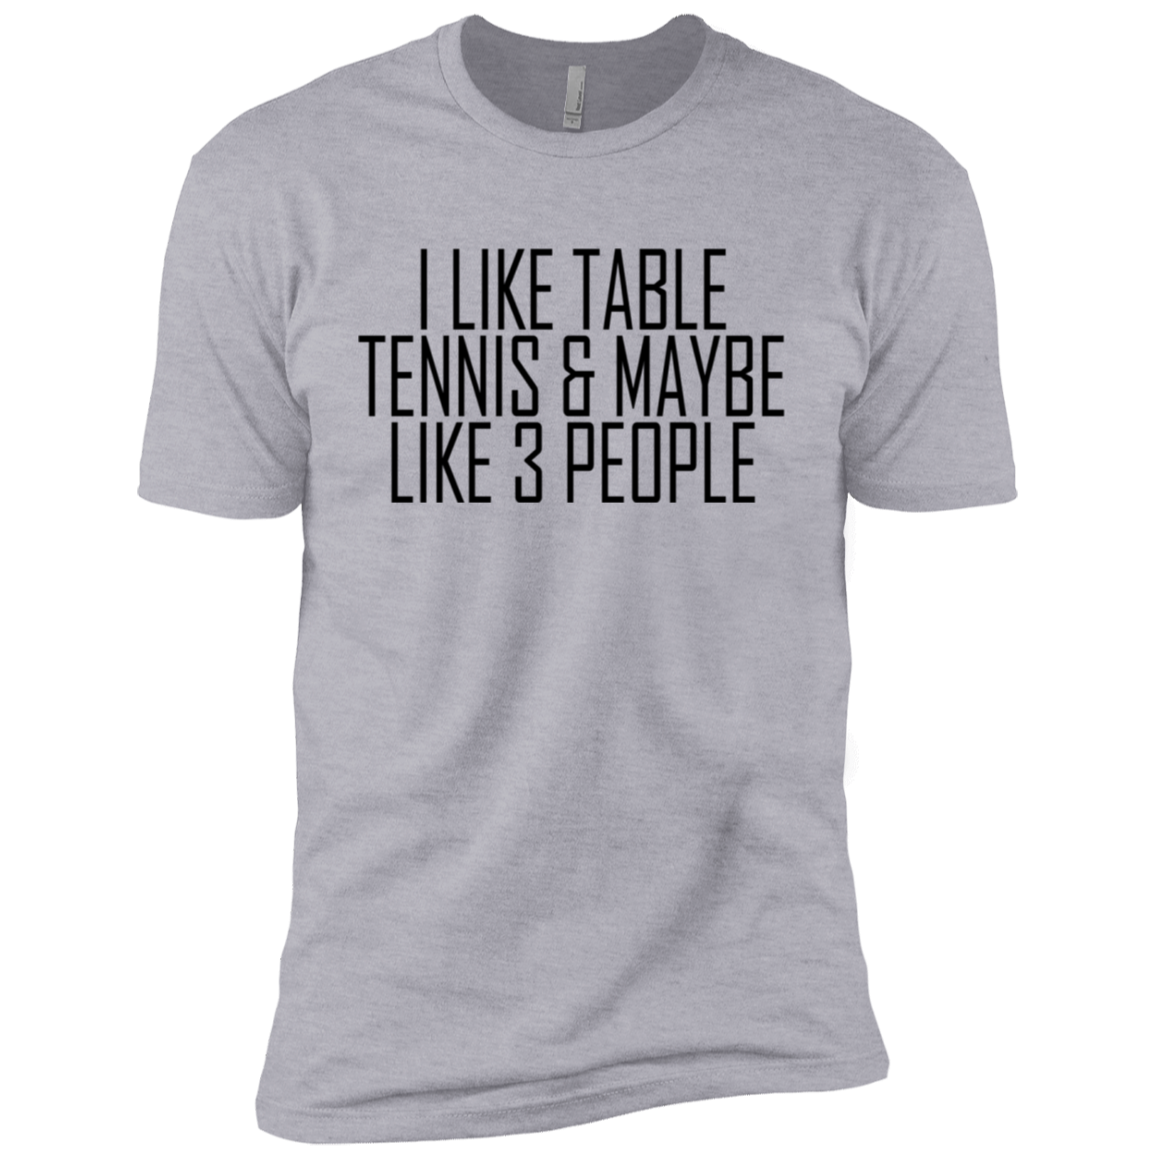 I Like Table Tennis ' Maybe 3 People Men's Classic Tee